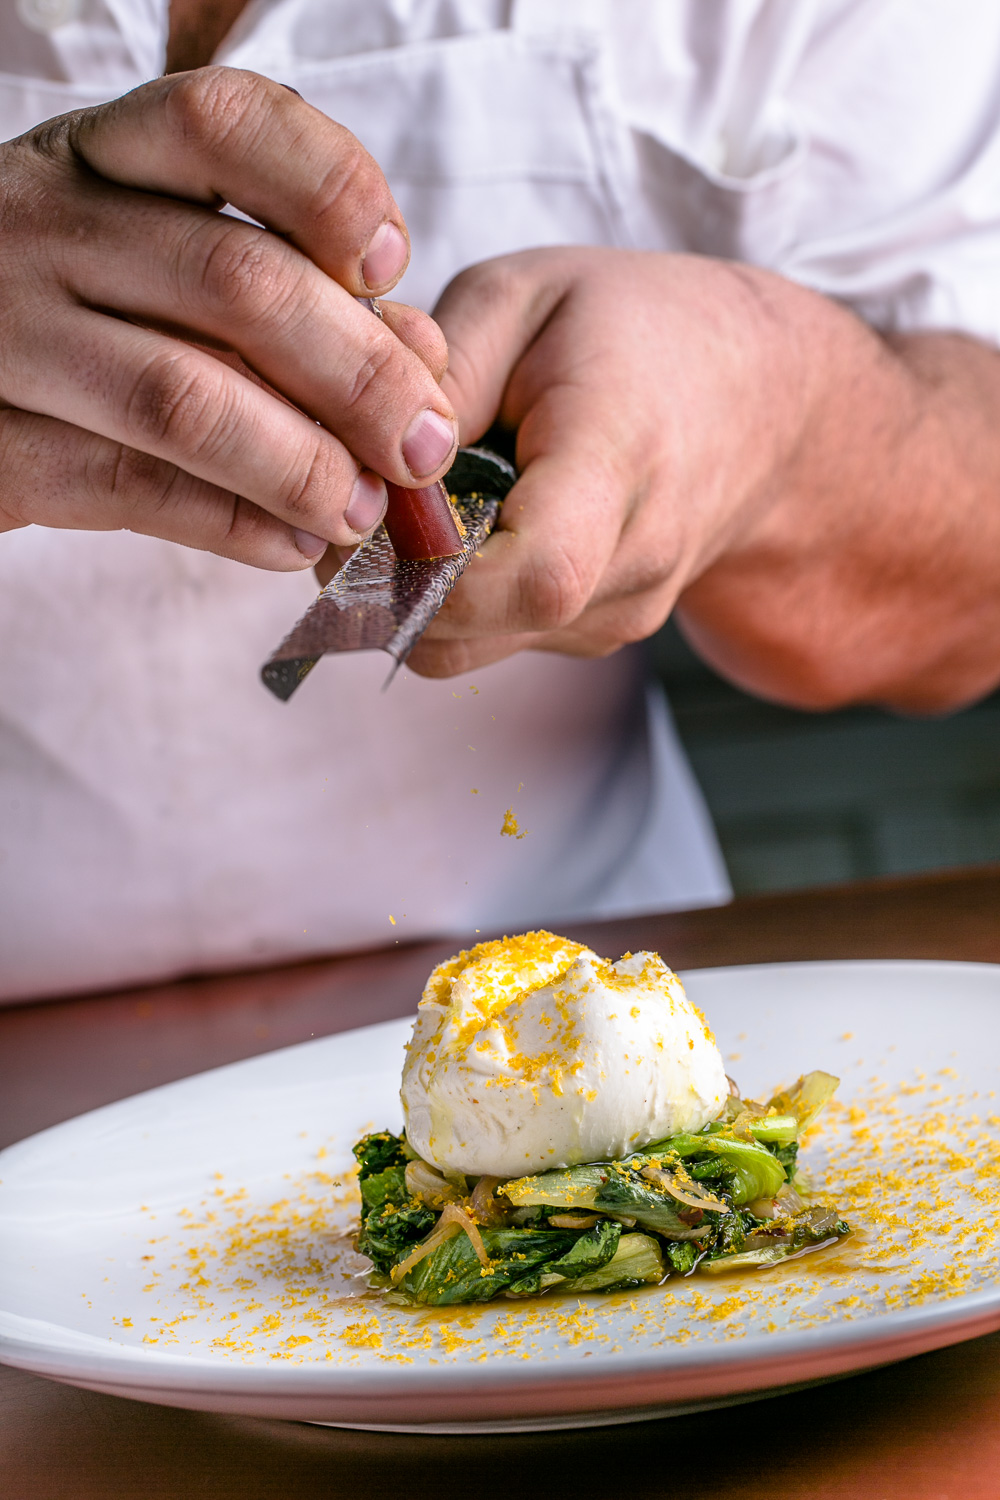 8Arm-Burrata-Preparation-Erik-Meadows